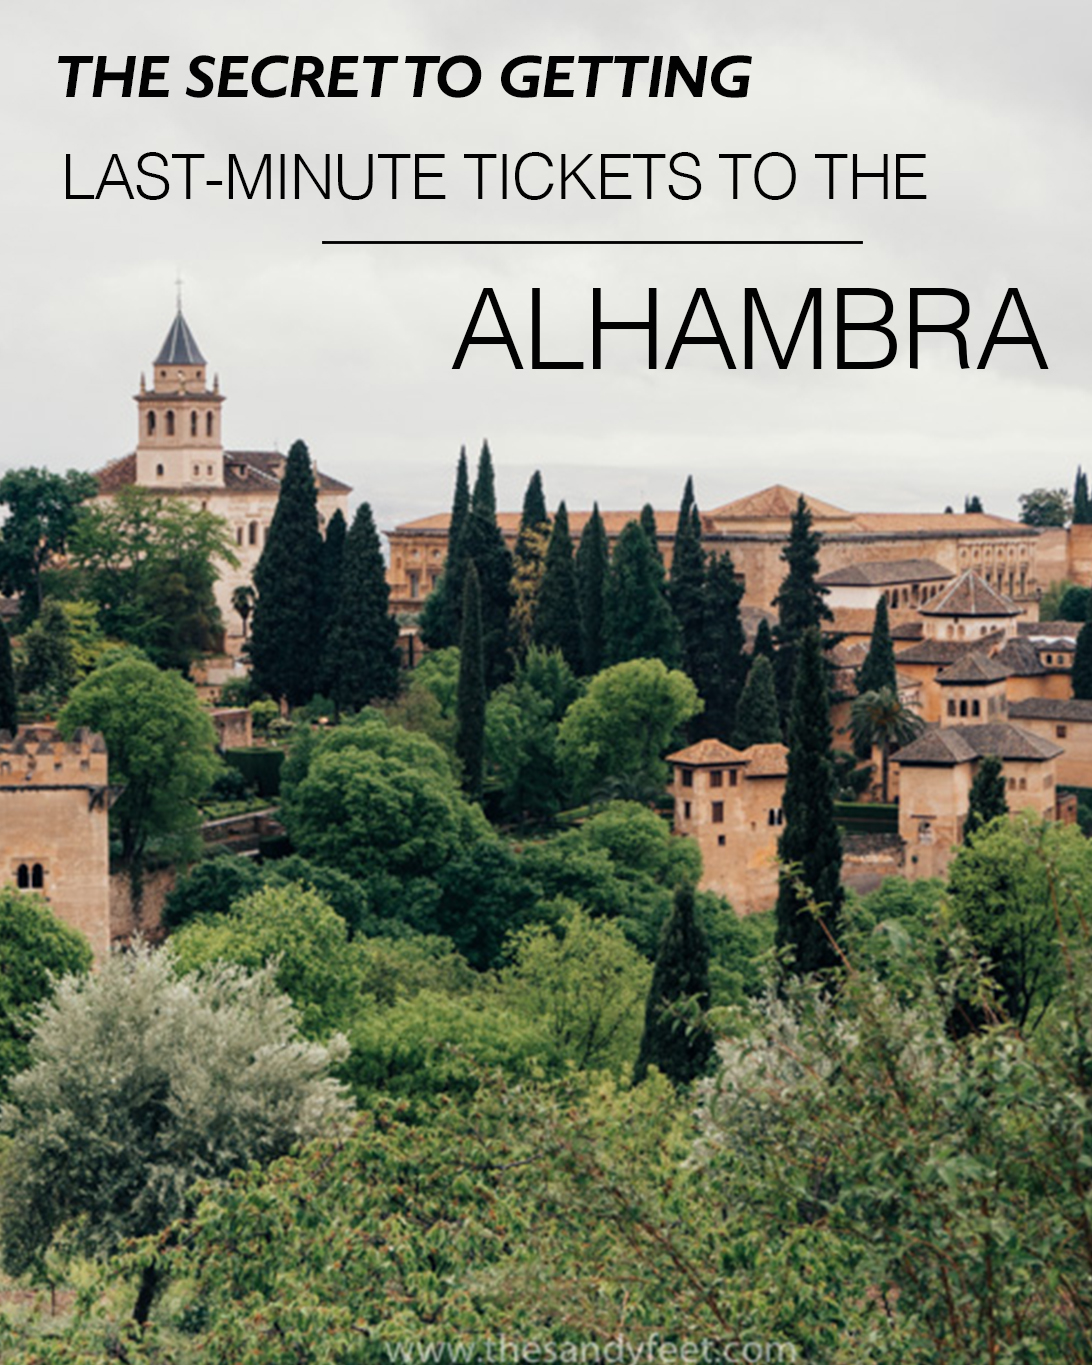 The Secret to Getting Last-Minute Tickets To Granada's Alhambra